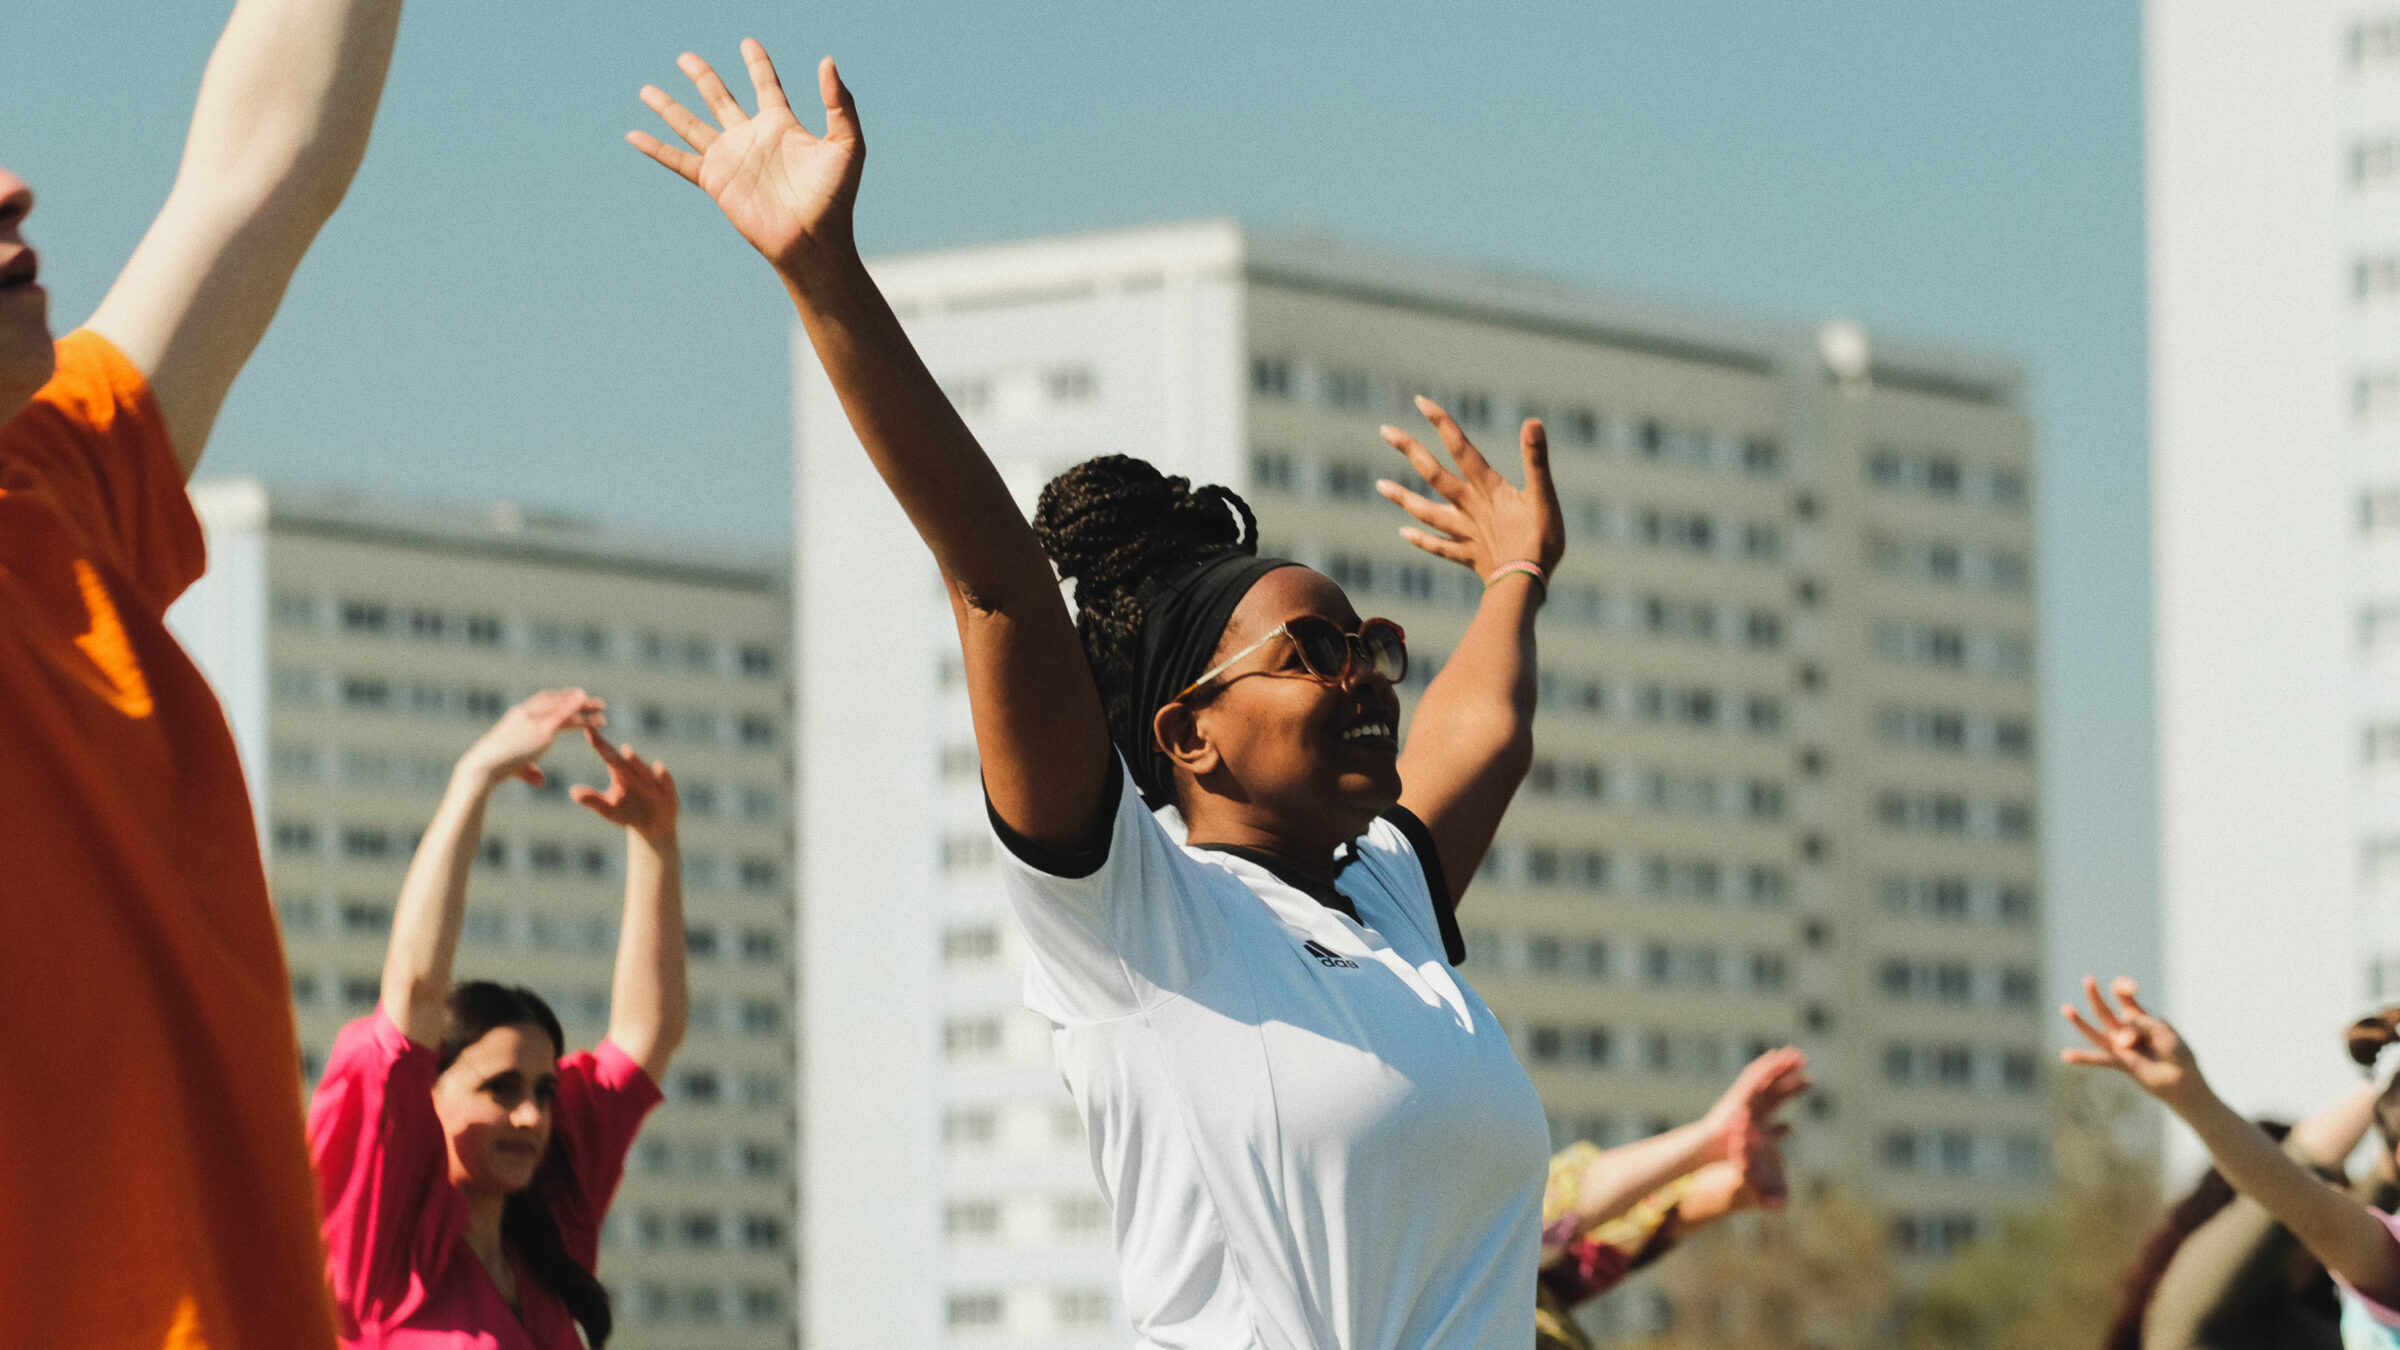 A woman stands with her arms raised as part of a dance event